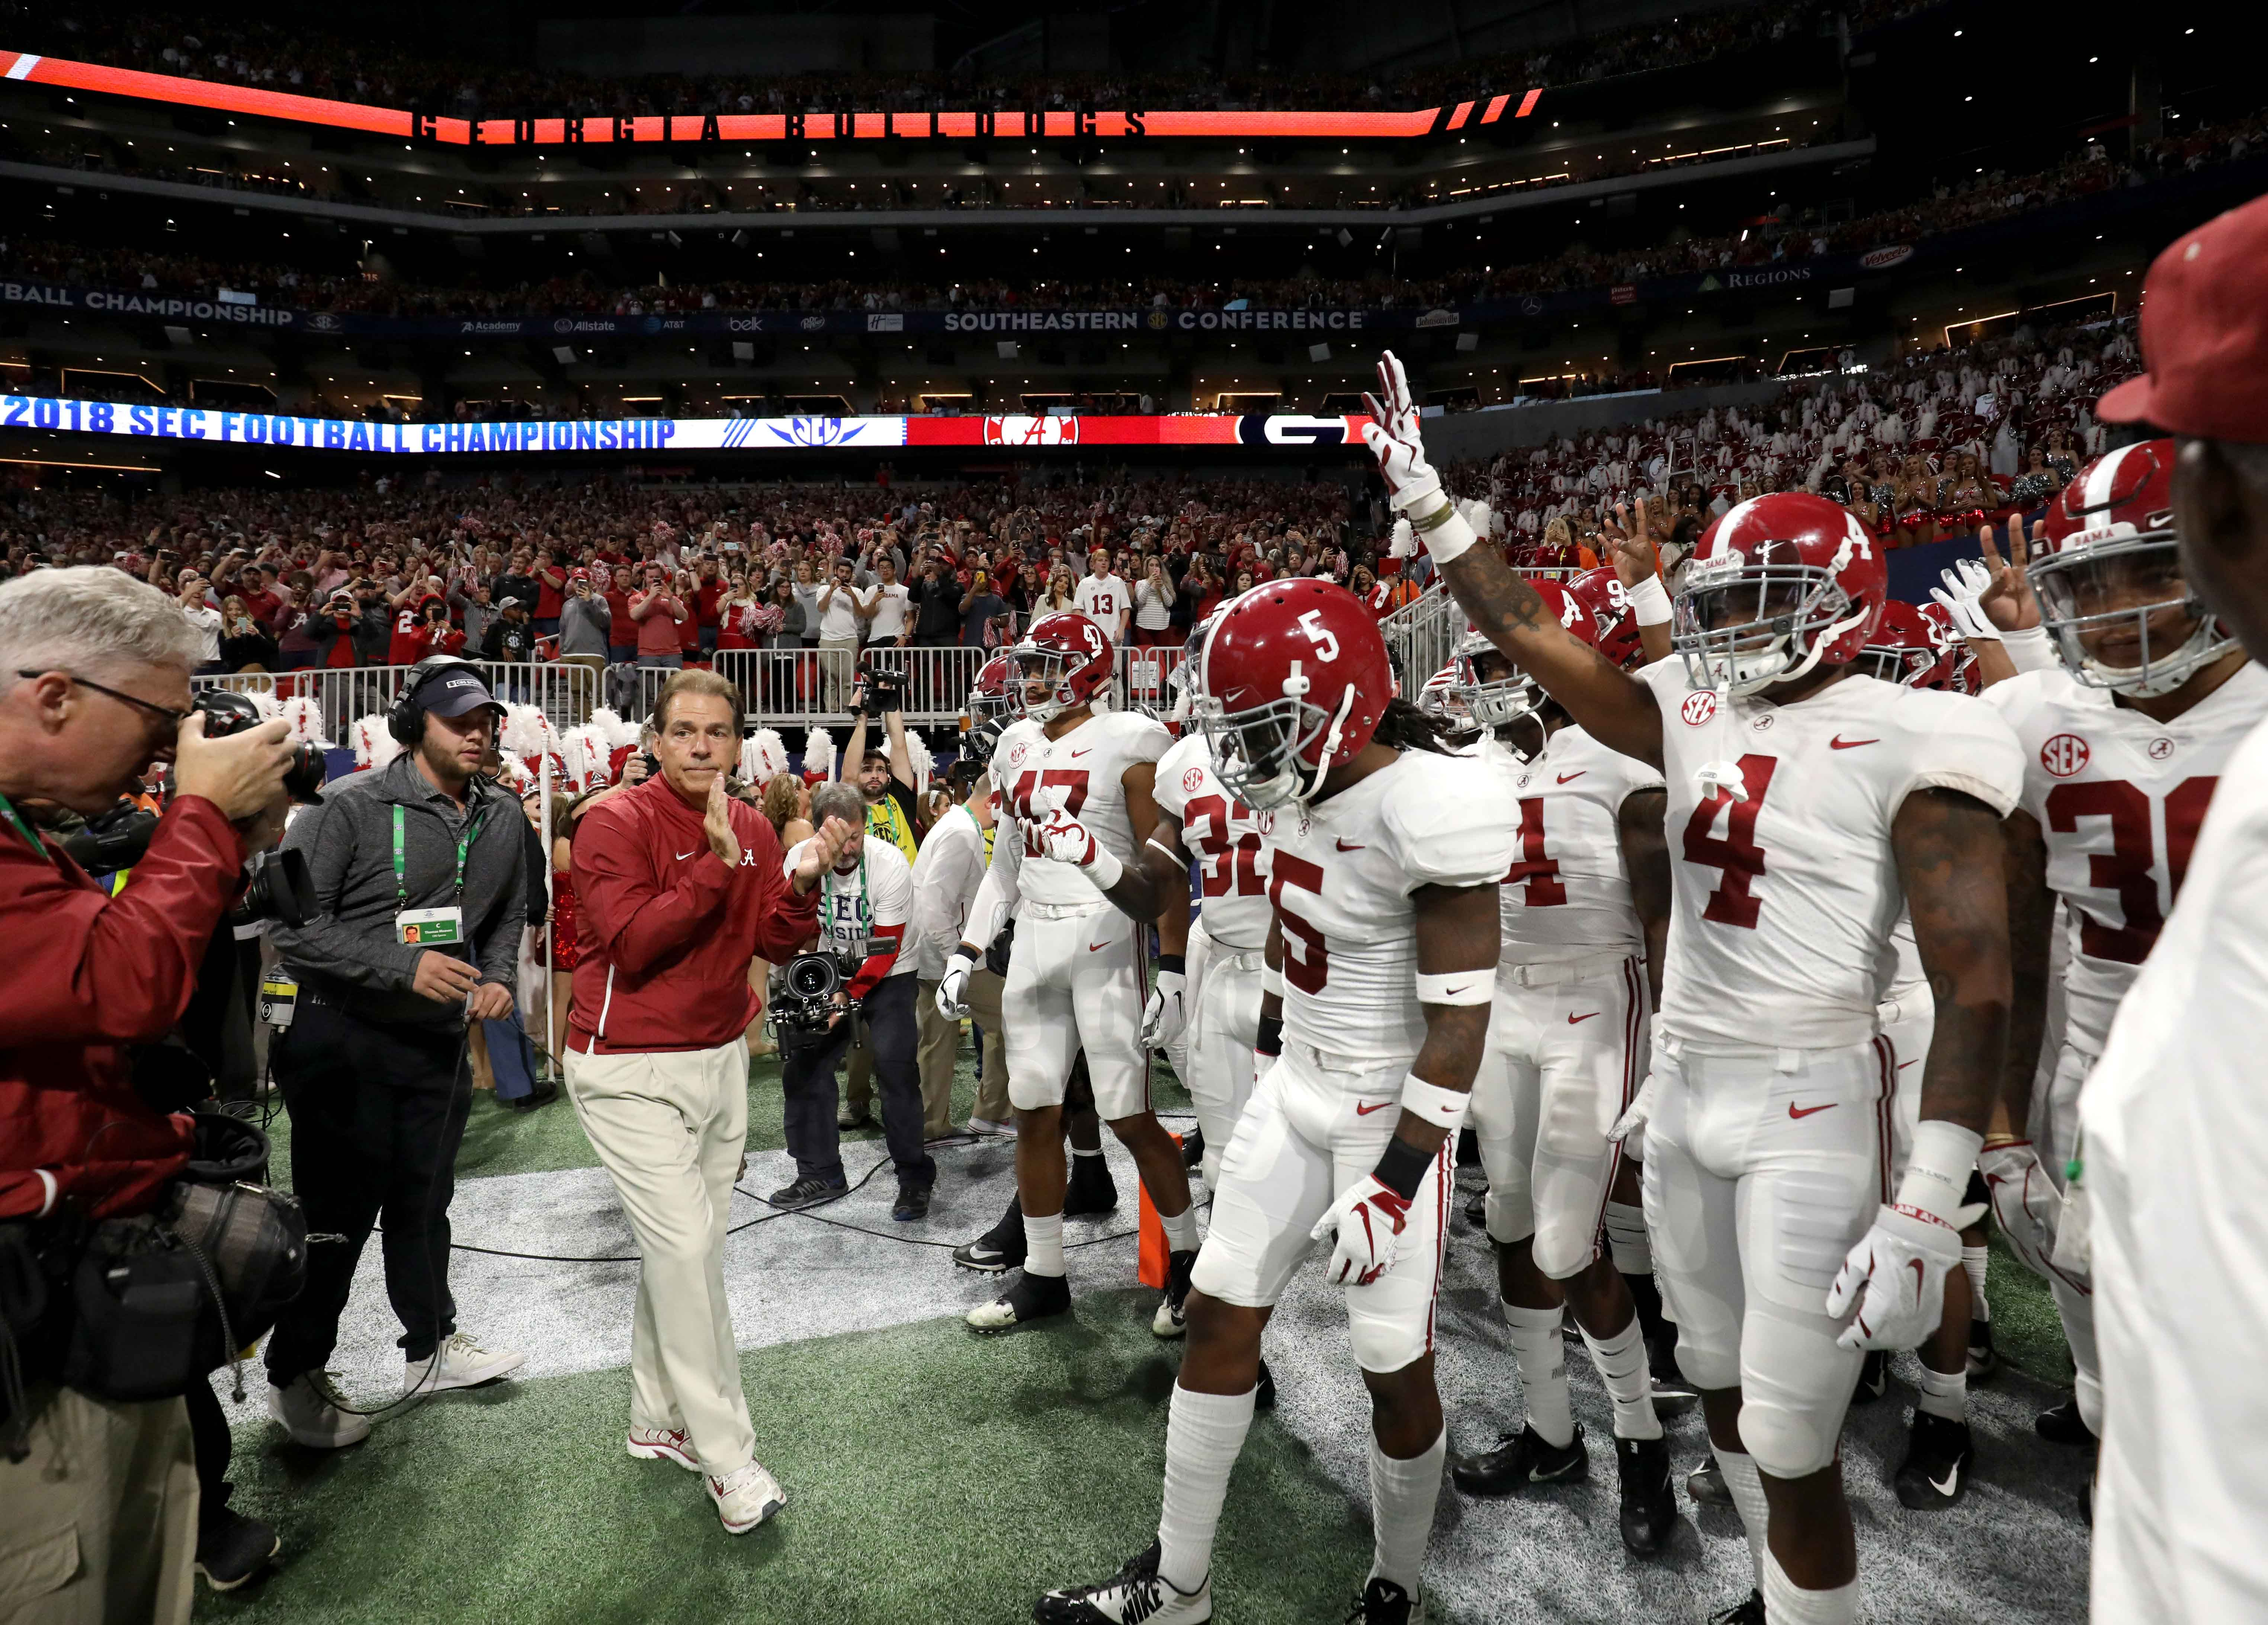 Head Coaches to Lead Multiple Schools to BCS/New Year's Six Bowls